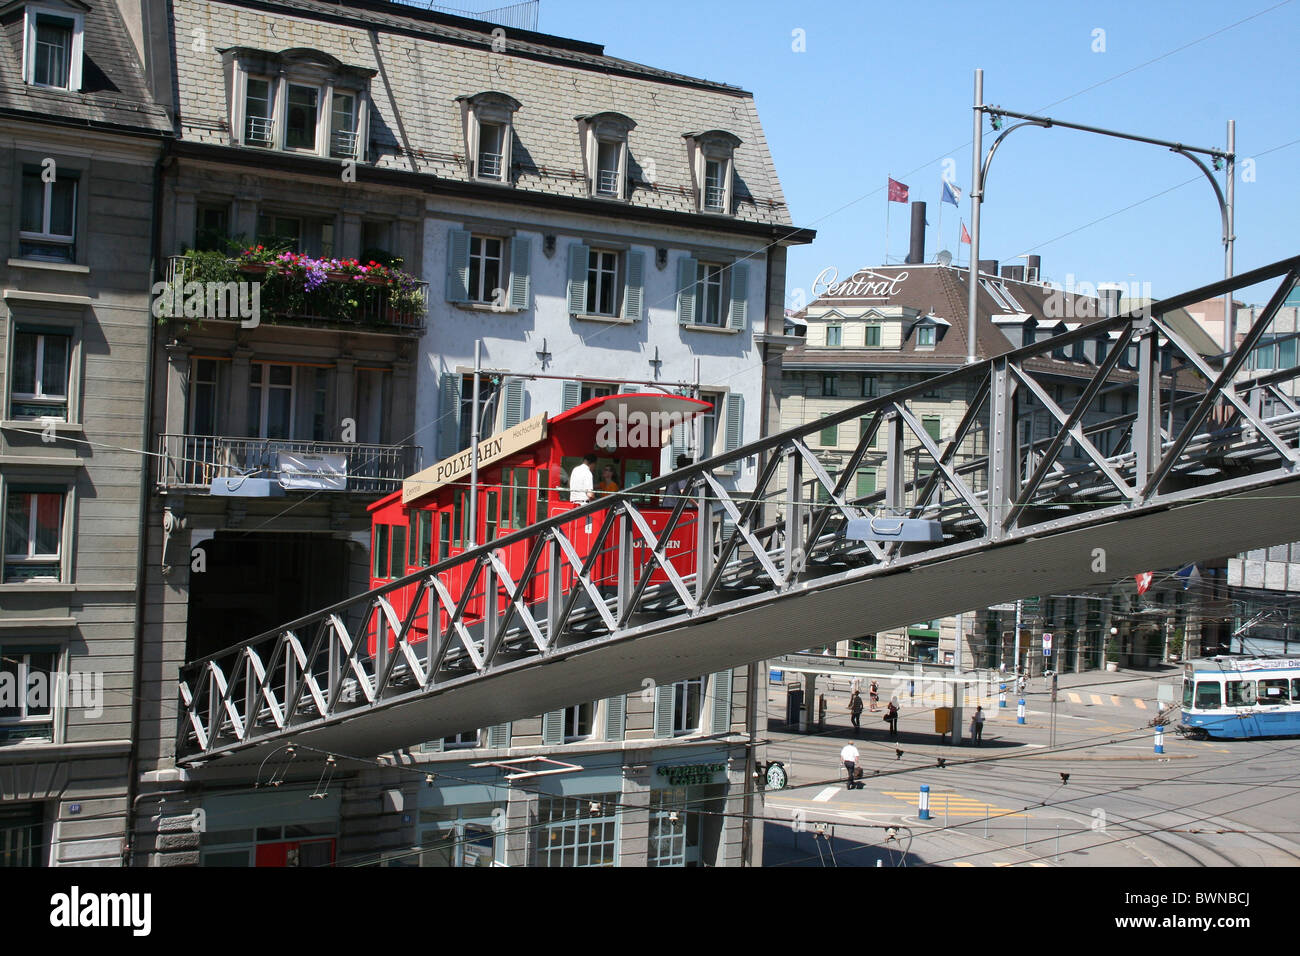 Switzerland Europe Zurich city Polybahn Zurich funicular railway cable car historic town Stock Photo